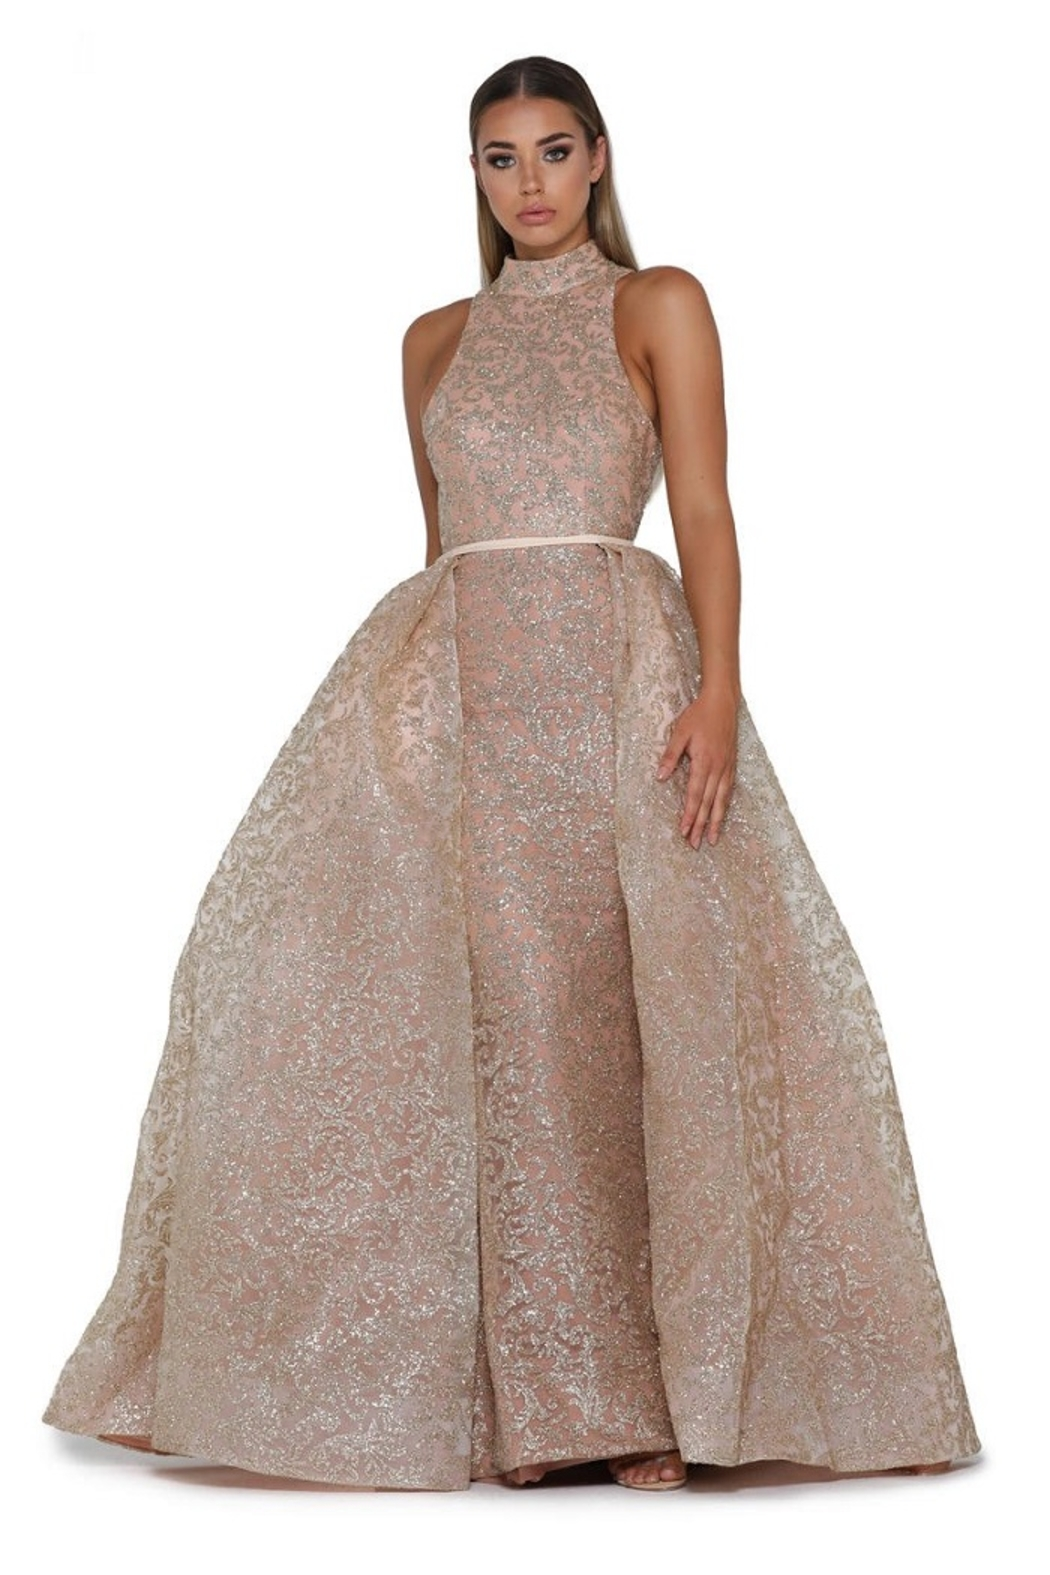 PORTIA AND SCARLETT Rose Gold Glitter Long Formal Dress With Detachable Train - Main Image